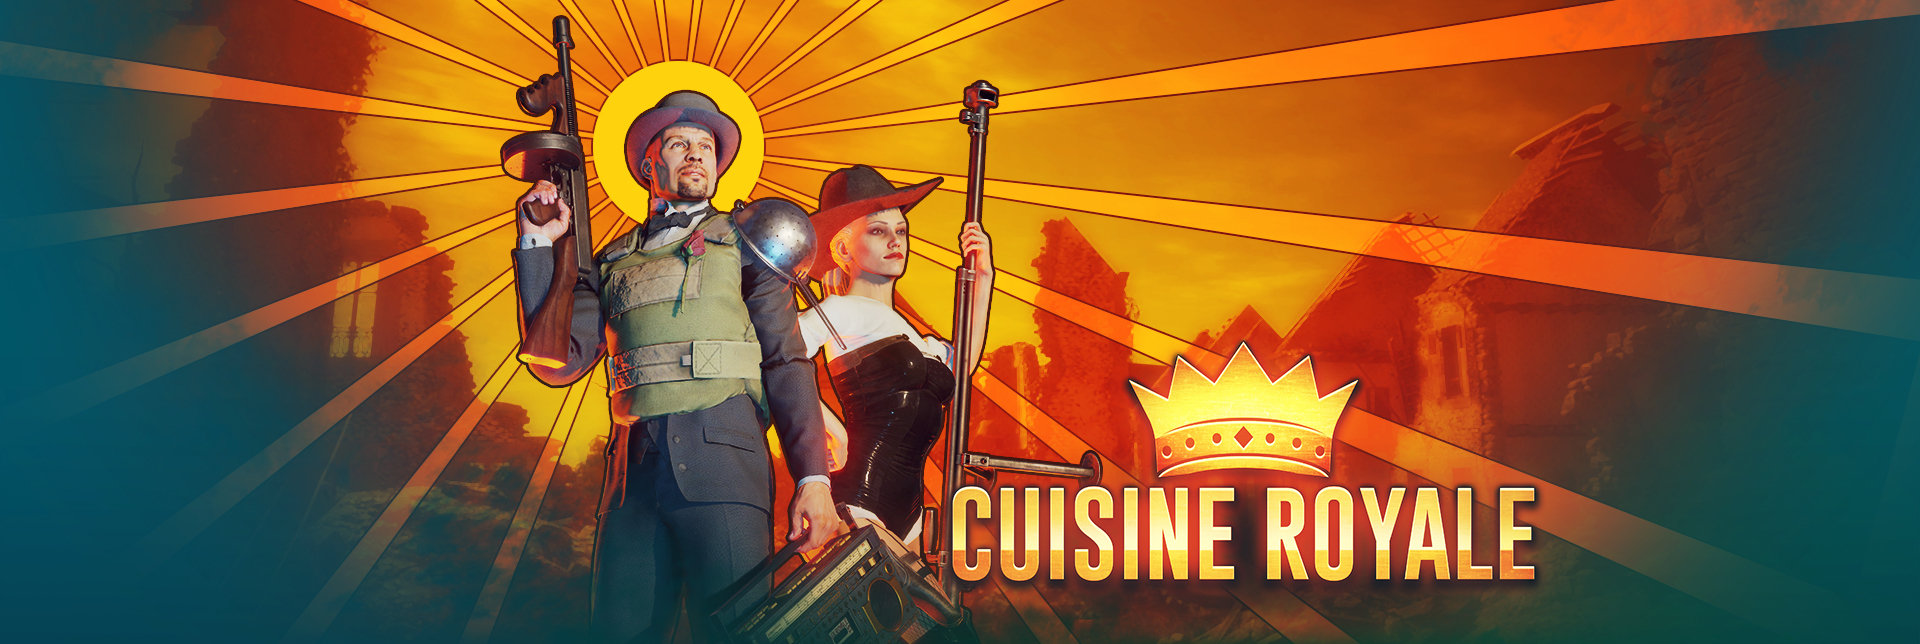 Cuisine Royale Malware Cuisine Royale On Steam